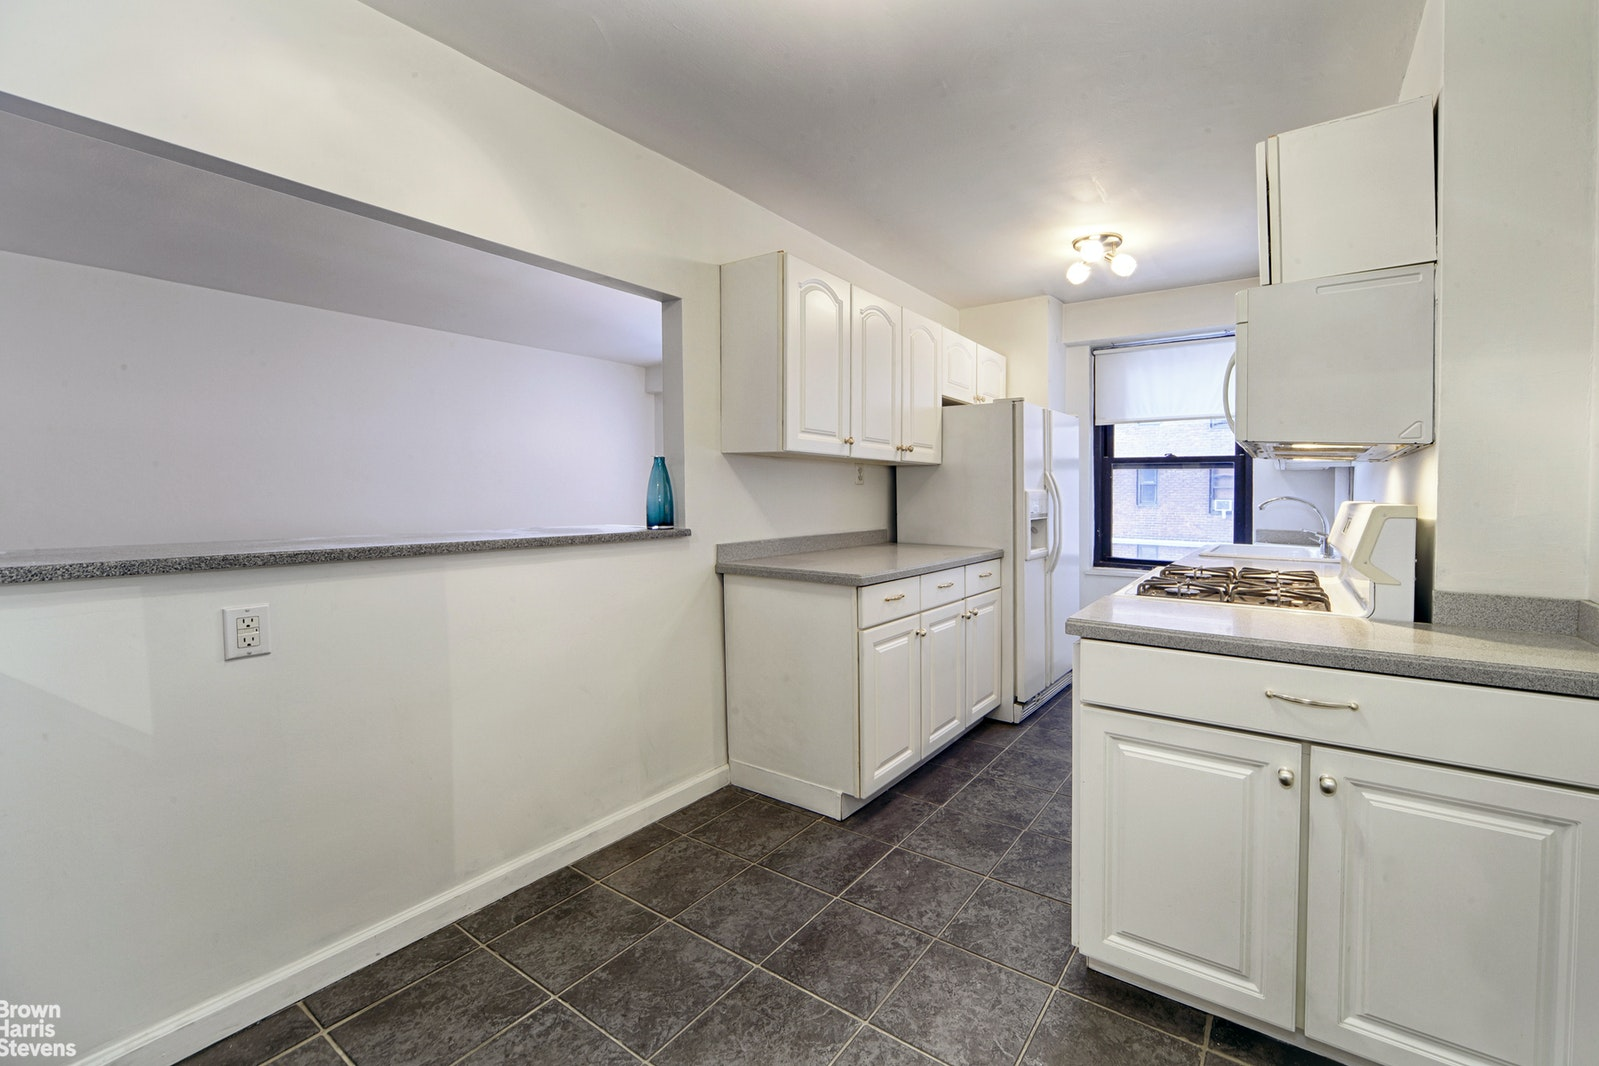 210 East Broadway, Lower East Side, NYC, 10002, Price Not Disclosed, Rented Property, ID# 11881132, Halstead